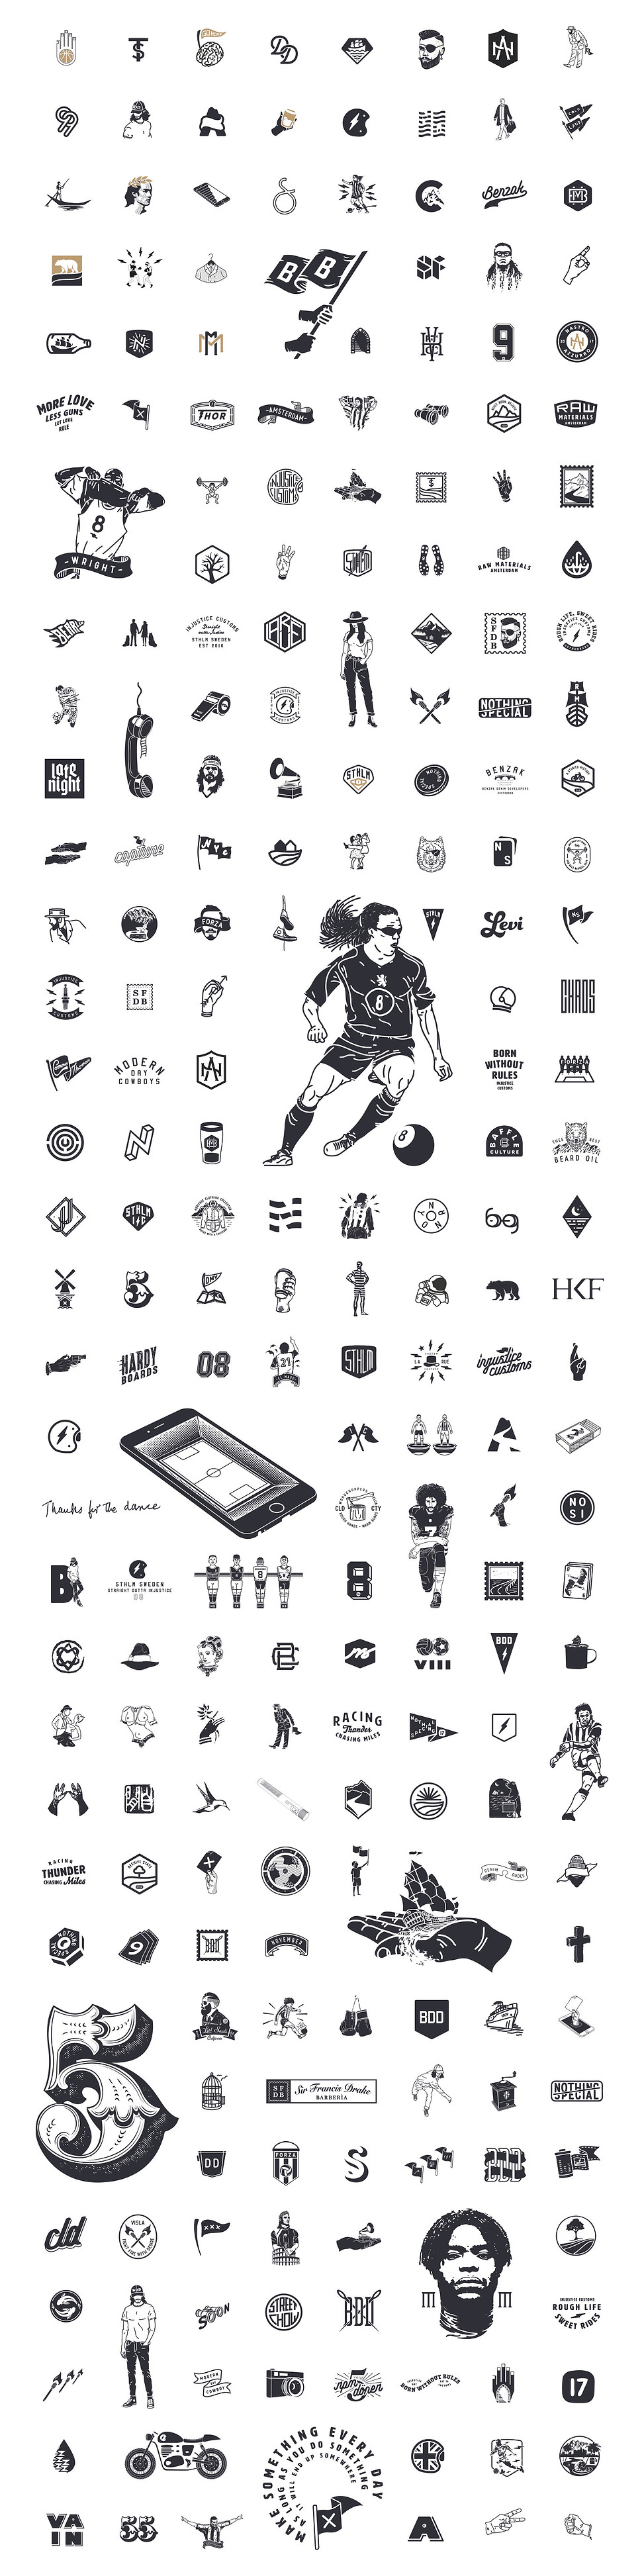 VISLA work projects icons